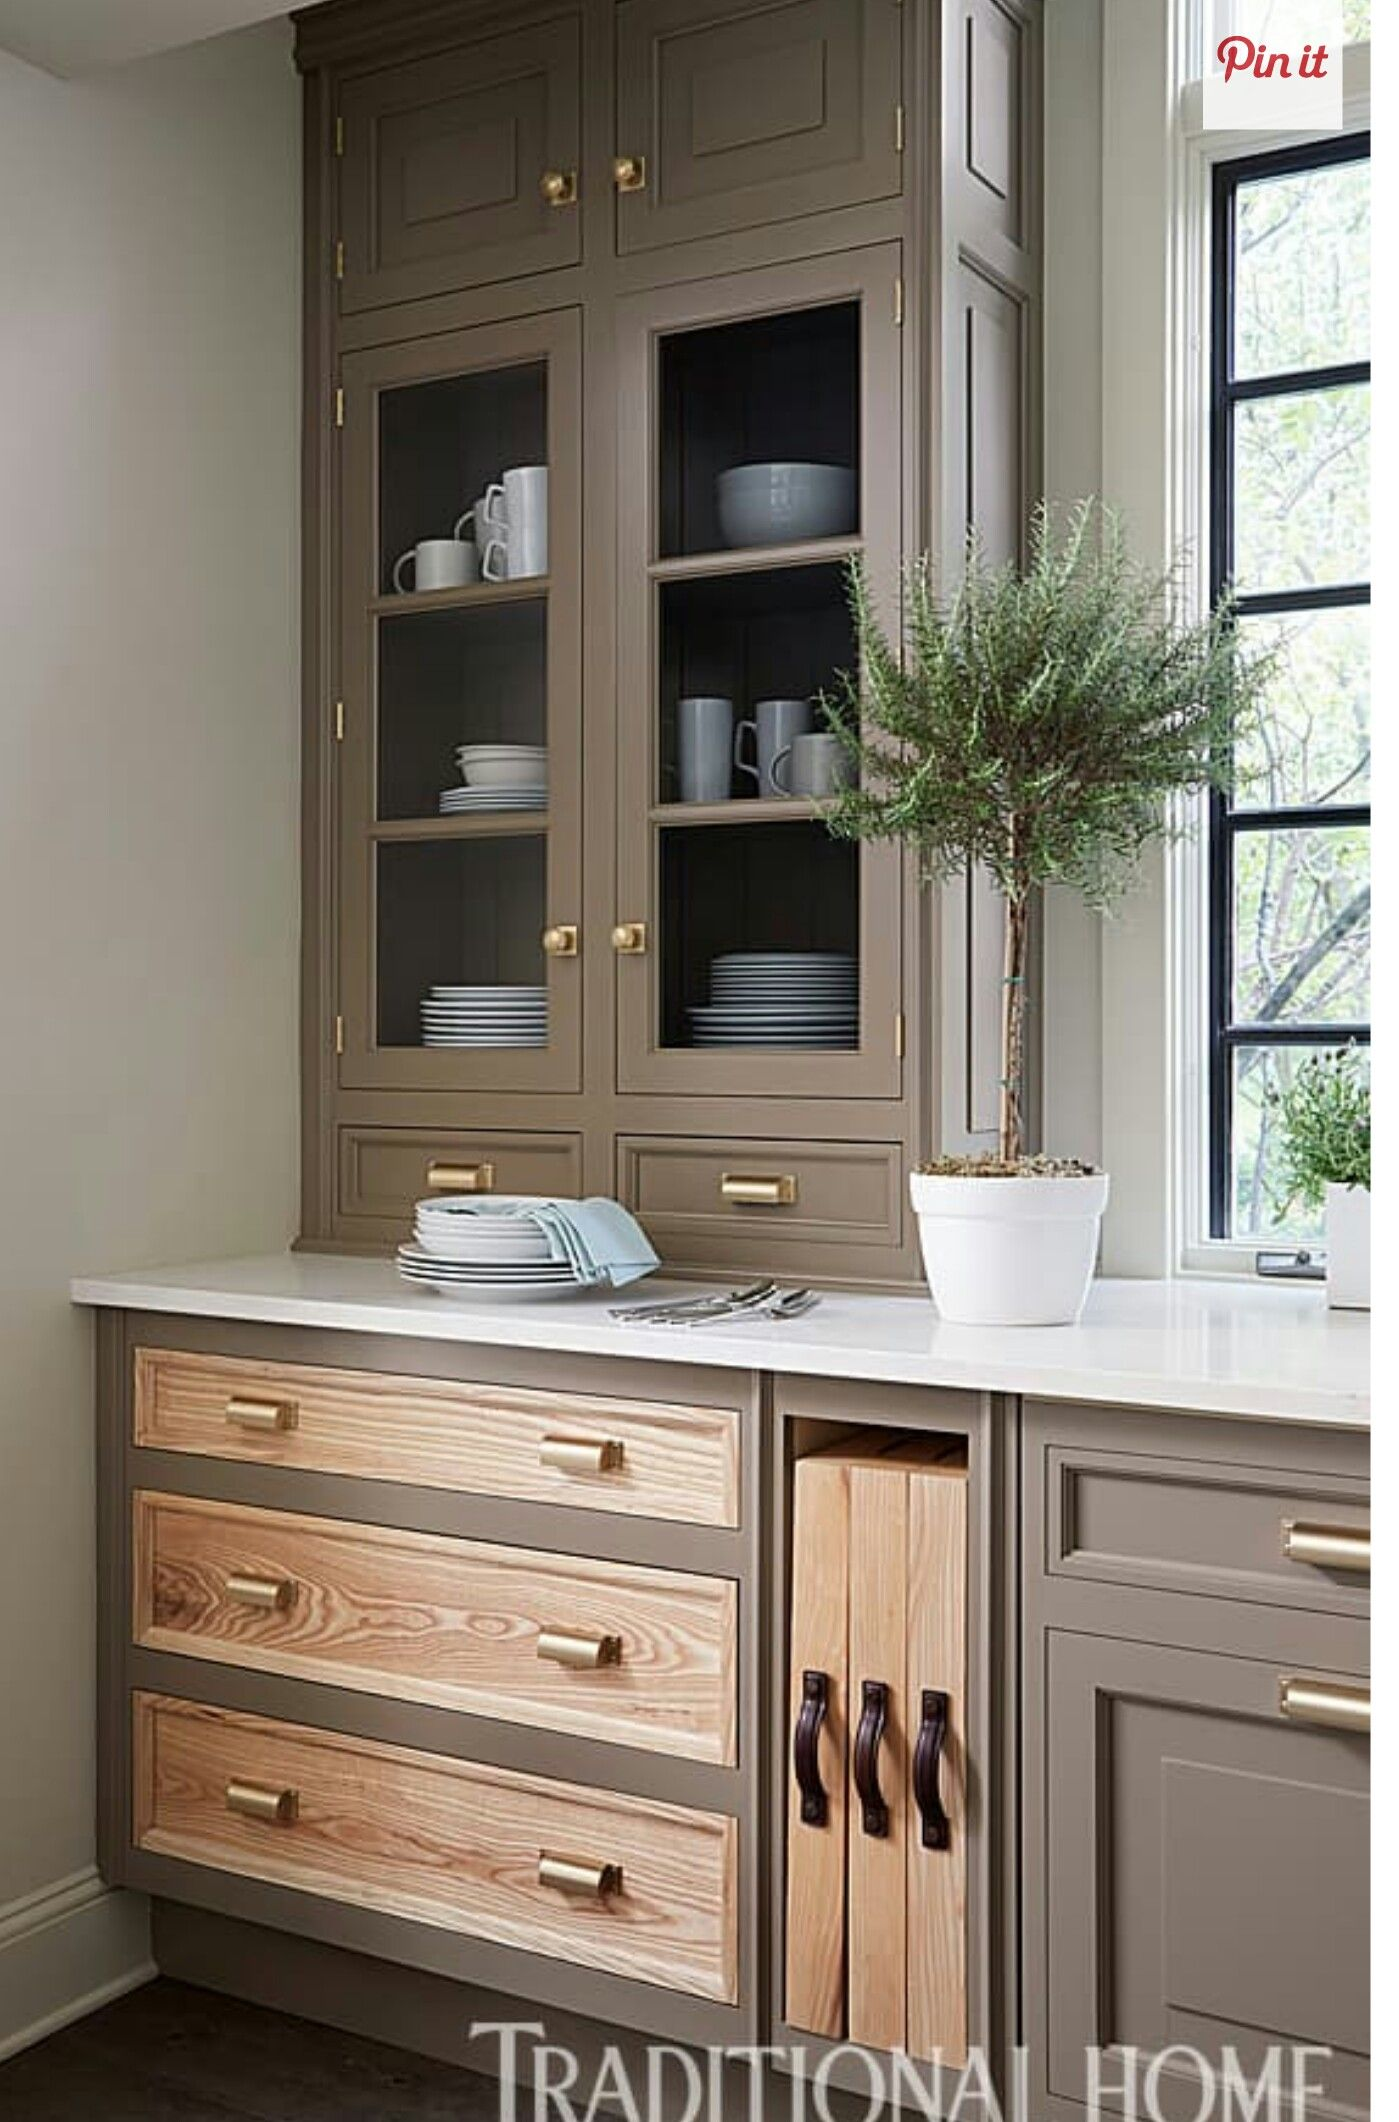 Pin By Janet Haskell On Upcycle In 2020 Rustic Kitchen Rustic Kitchen Cabinets Kitchen Cabinetry